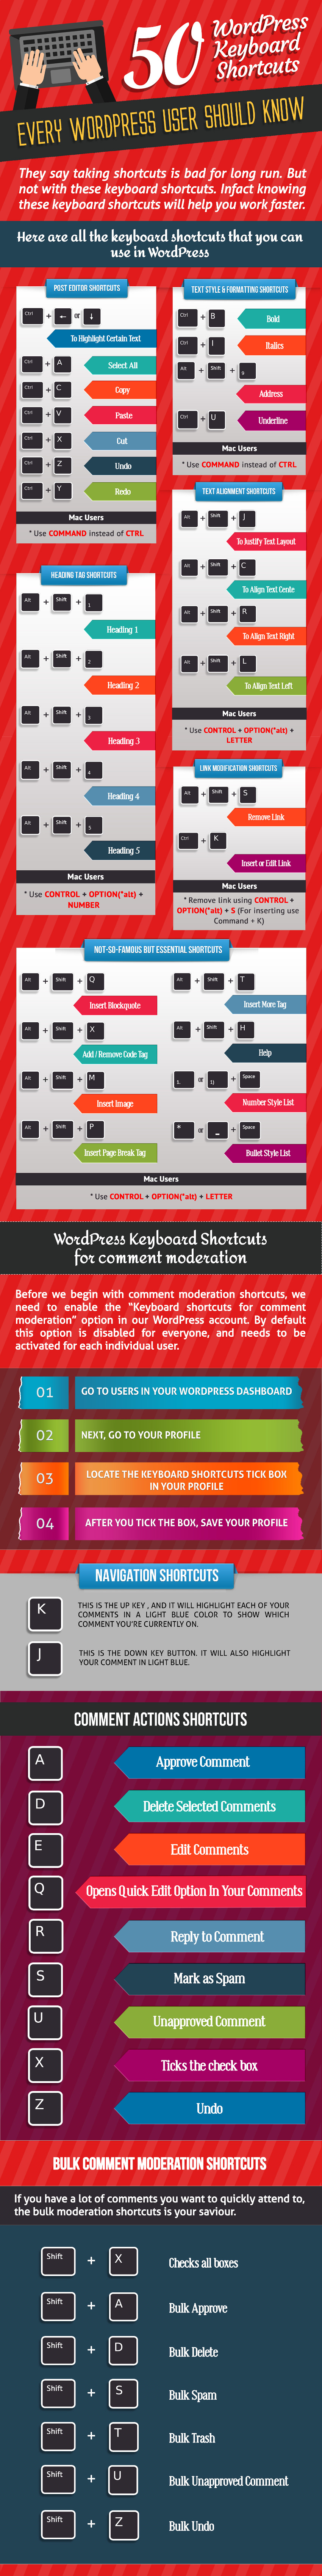 WordPress Keyboard Shortcuts Infographic